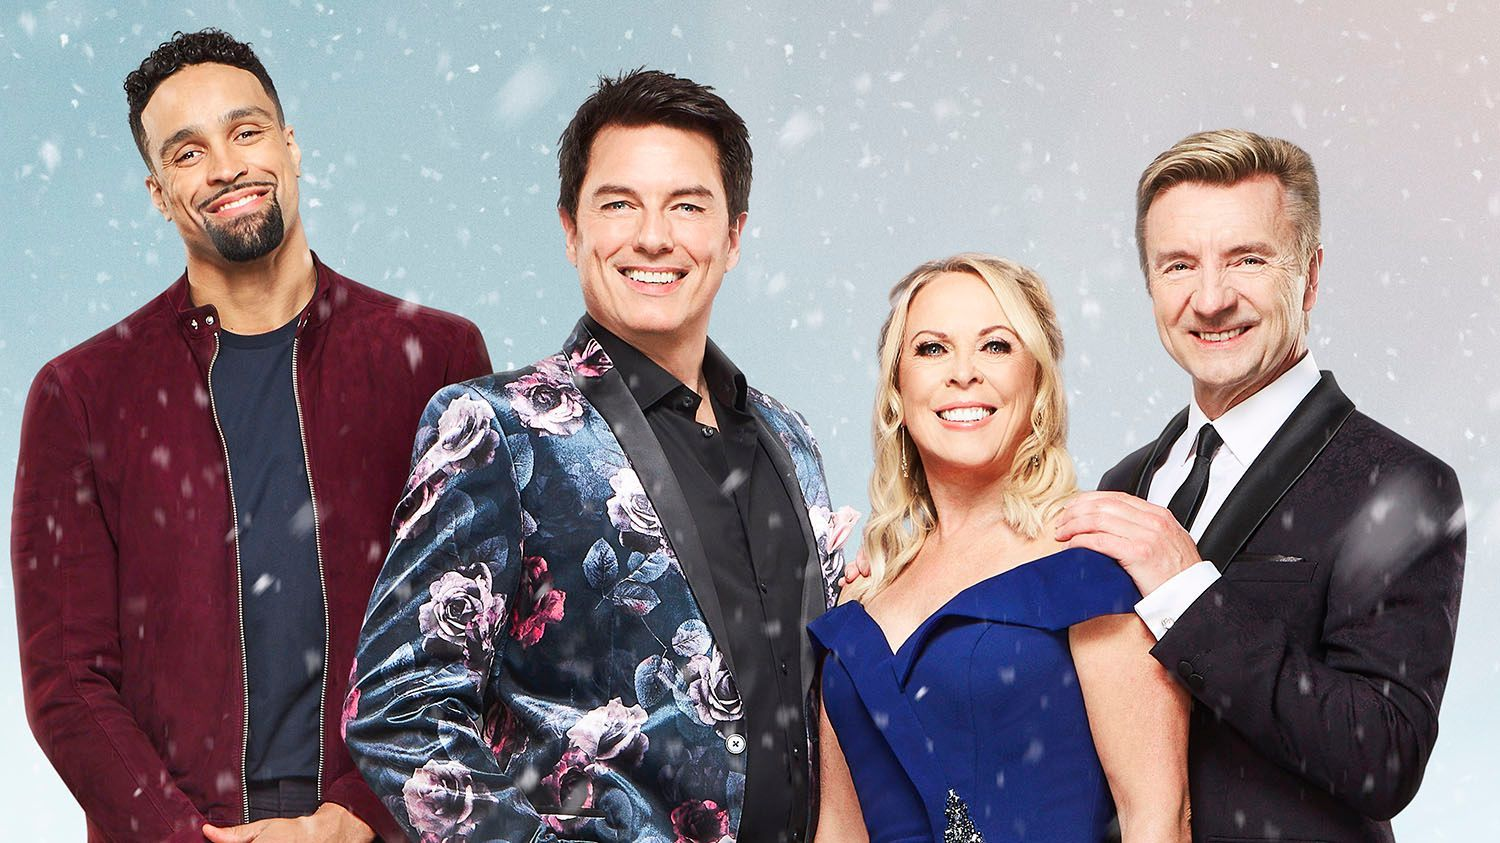 The Dancing on Ice 2020 live shows start tomorrow on ITV